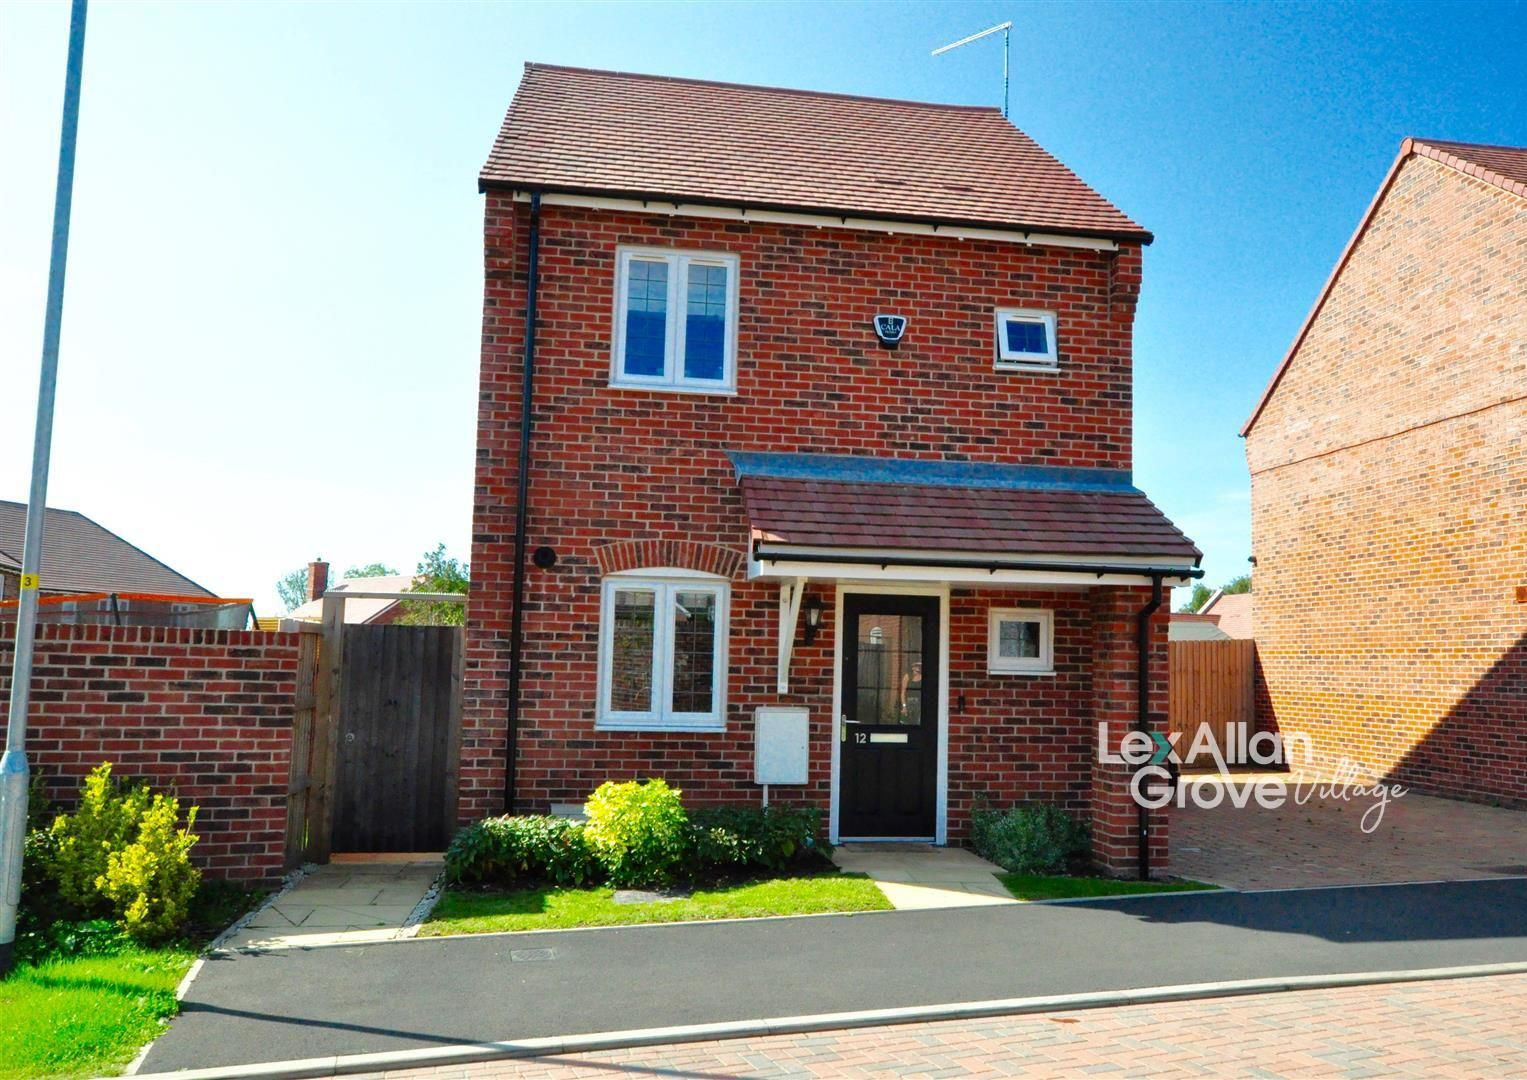 2 bed detached for sale in Hagley, DY9